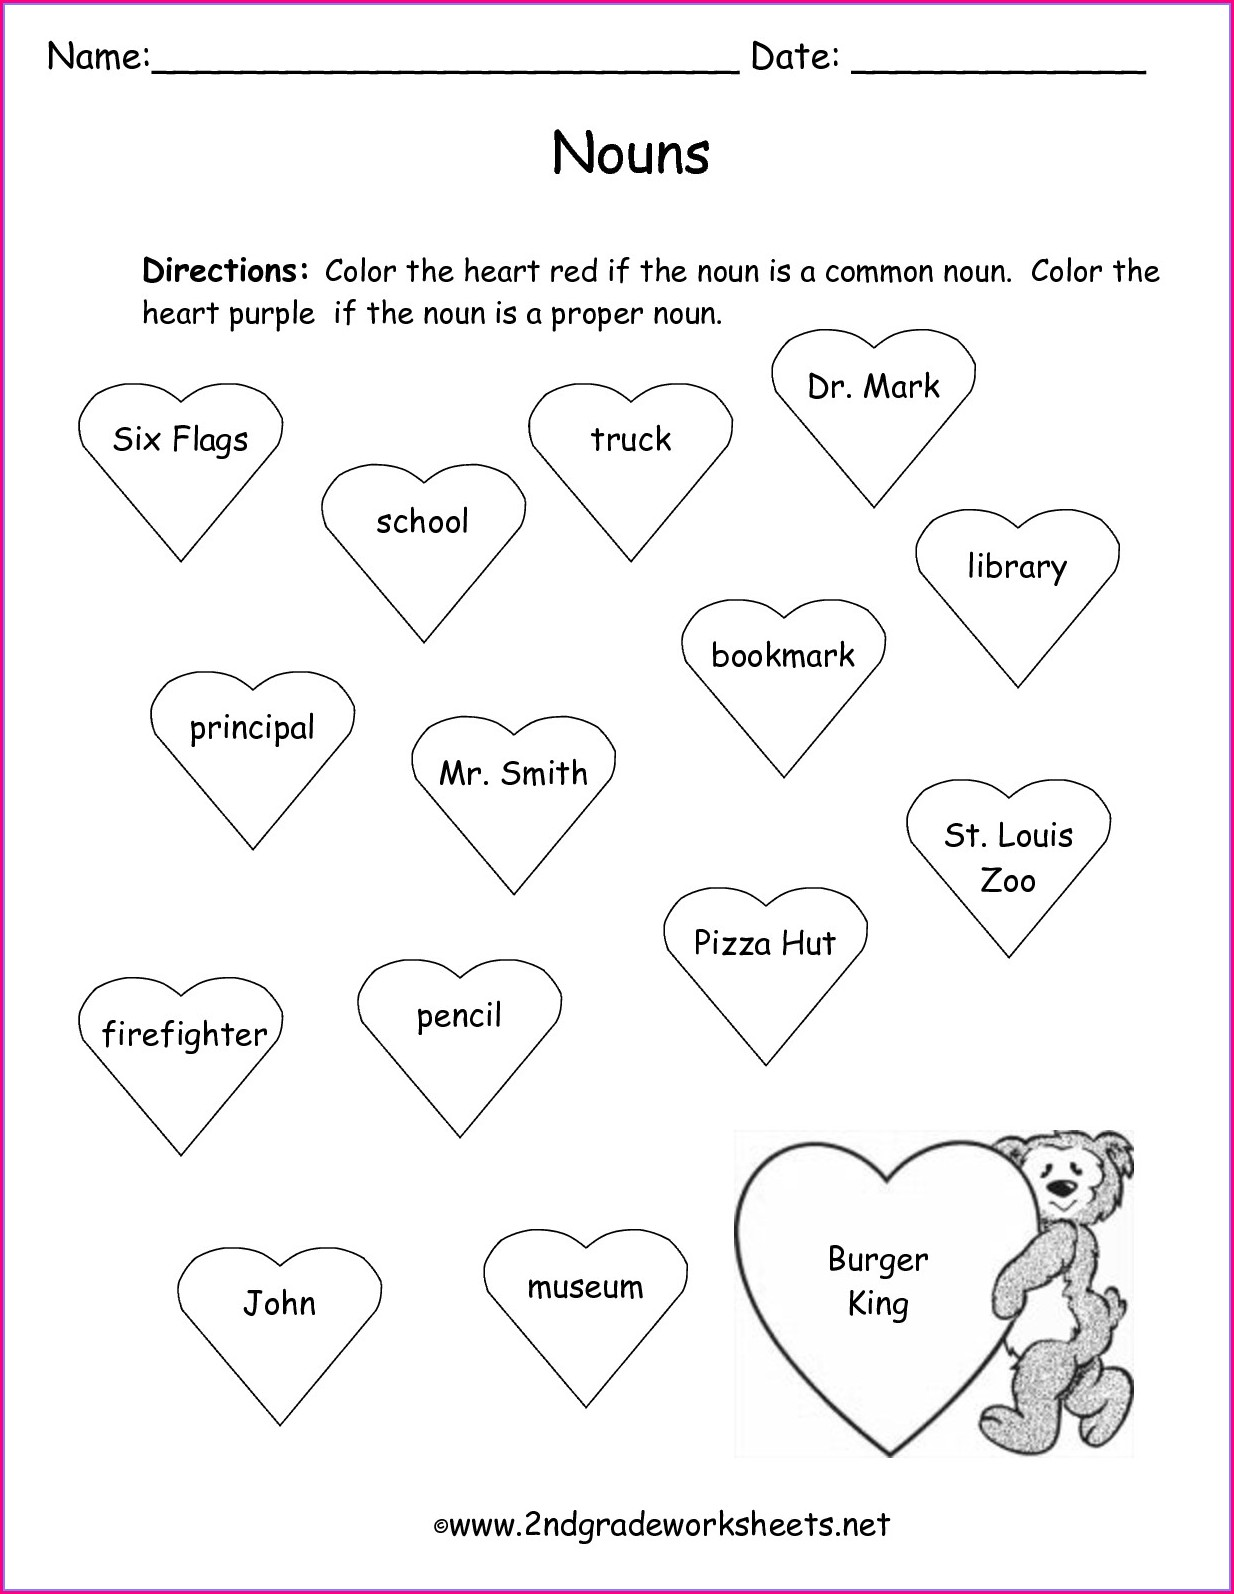 Free Printable Valentine's Day Worksheet 1st Grade